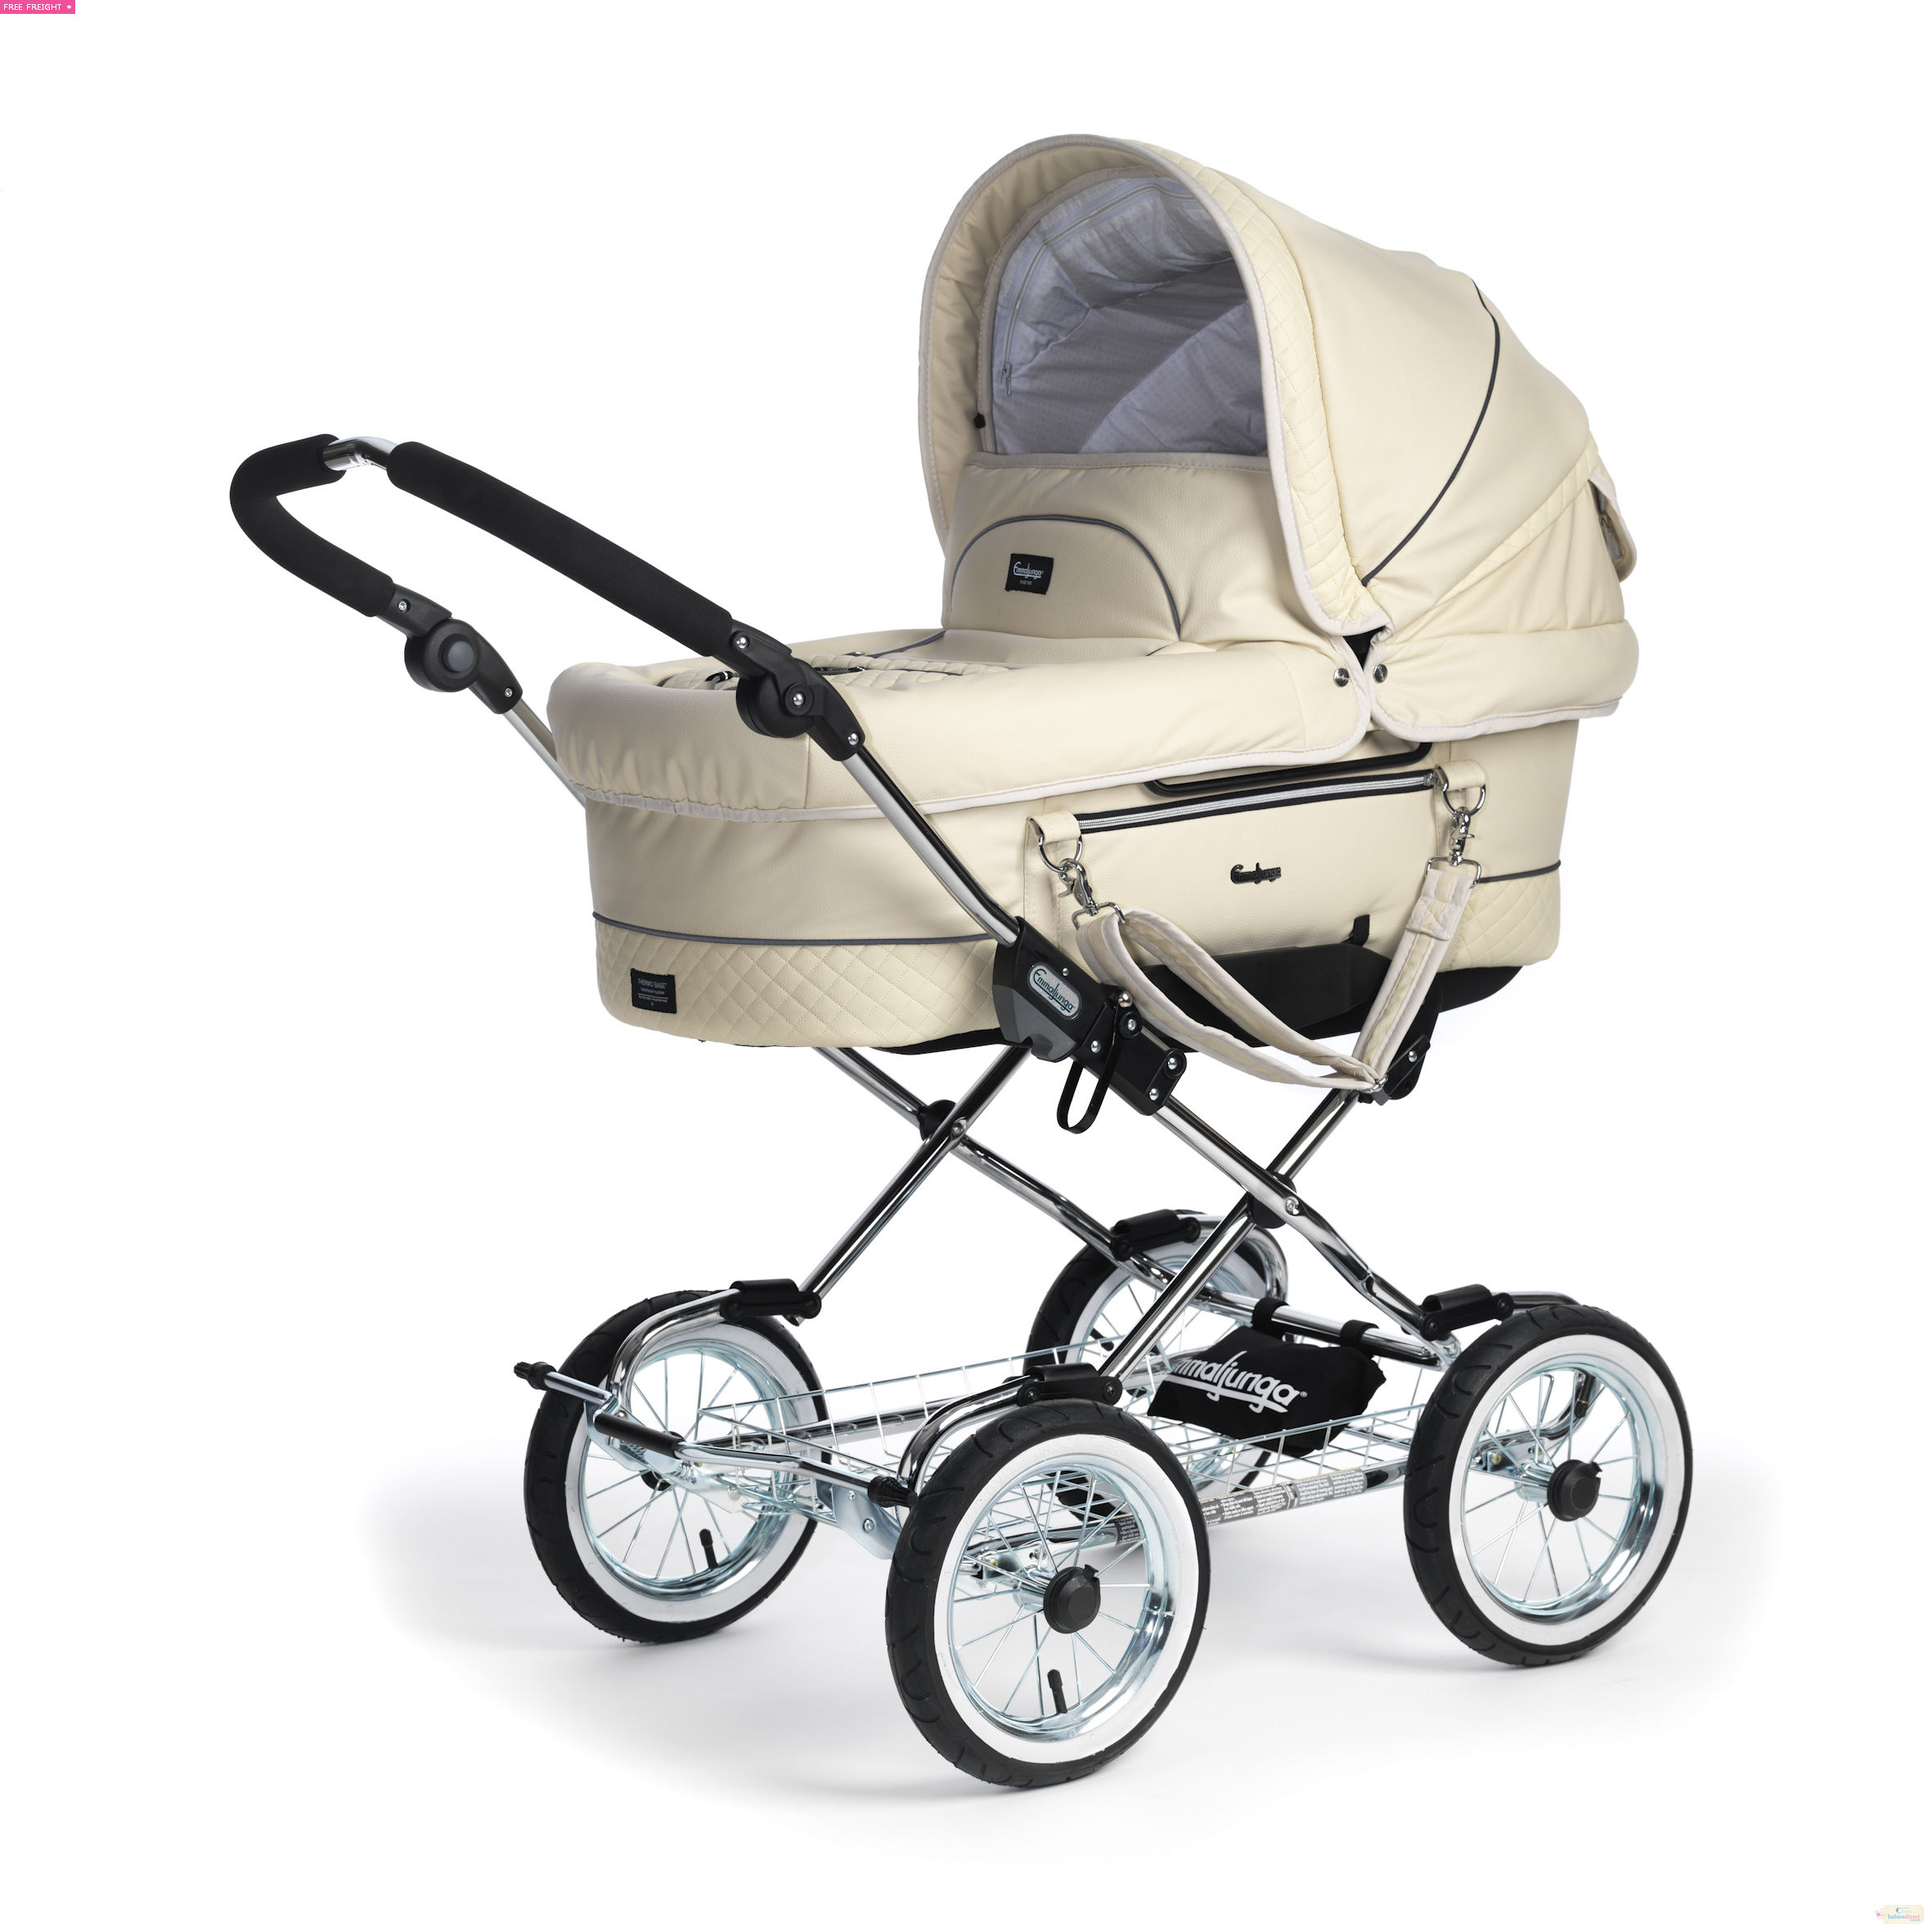 The Emmajlunga Mondial Duo Combi Pram is sheer elegancy